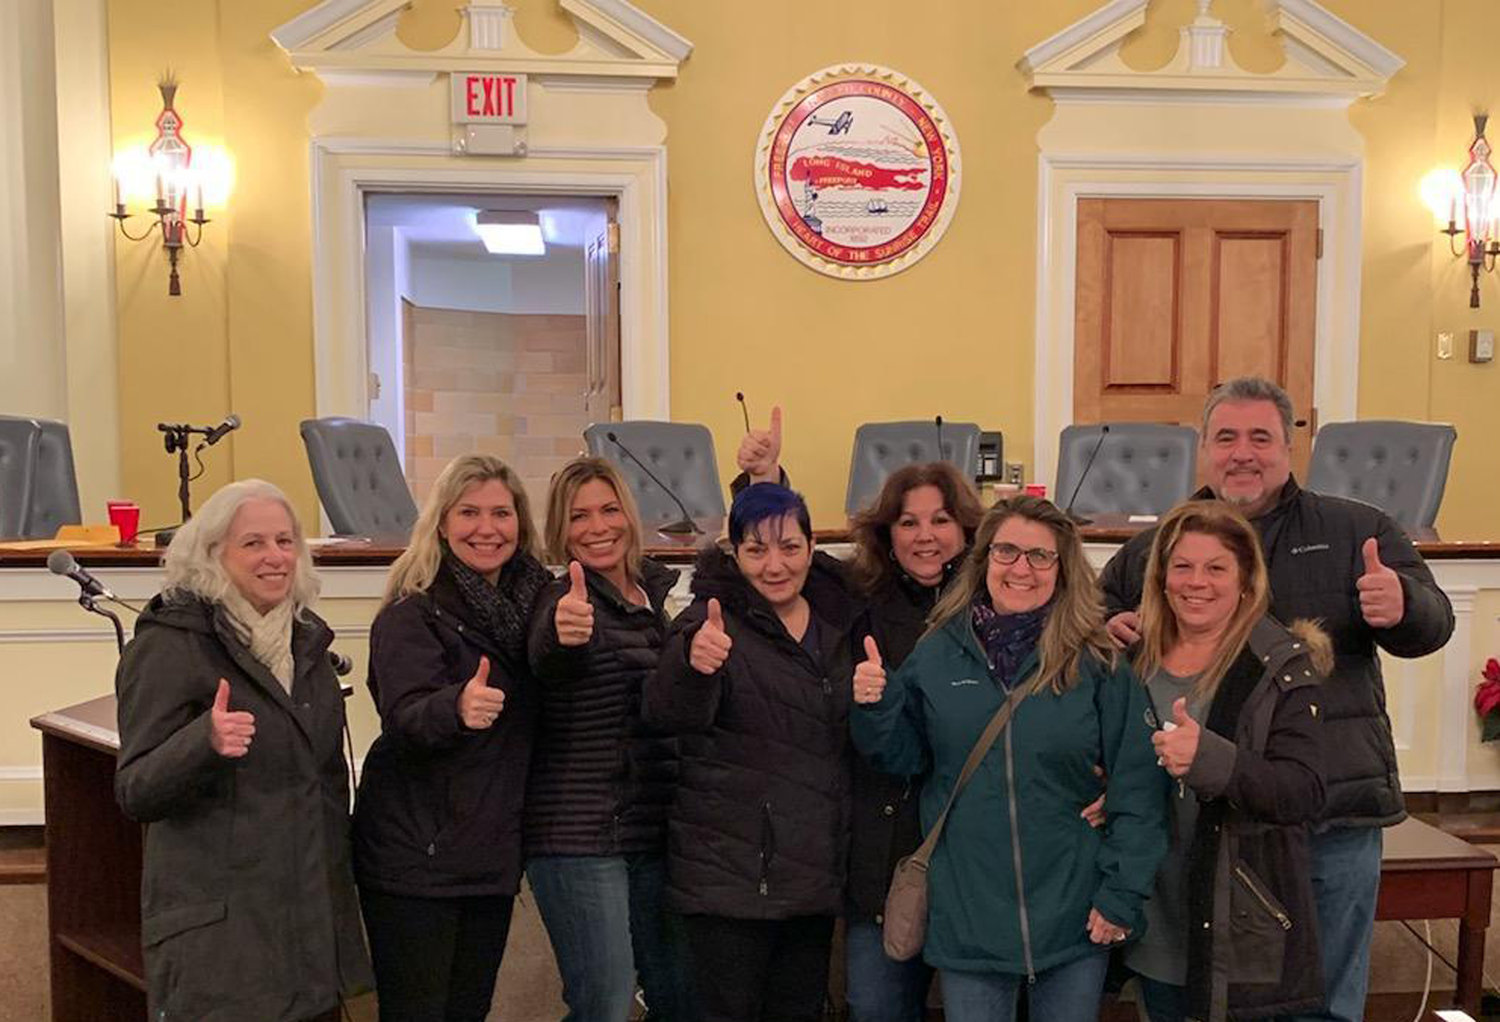 Volunteers of Our Best Friend Rescued attended the Village Hall meeting on Dec. 18 when the Board of Trustees held a public hearing to adopt updates to the village pet codes that the organization had pushed to be changed in early December.